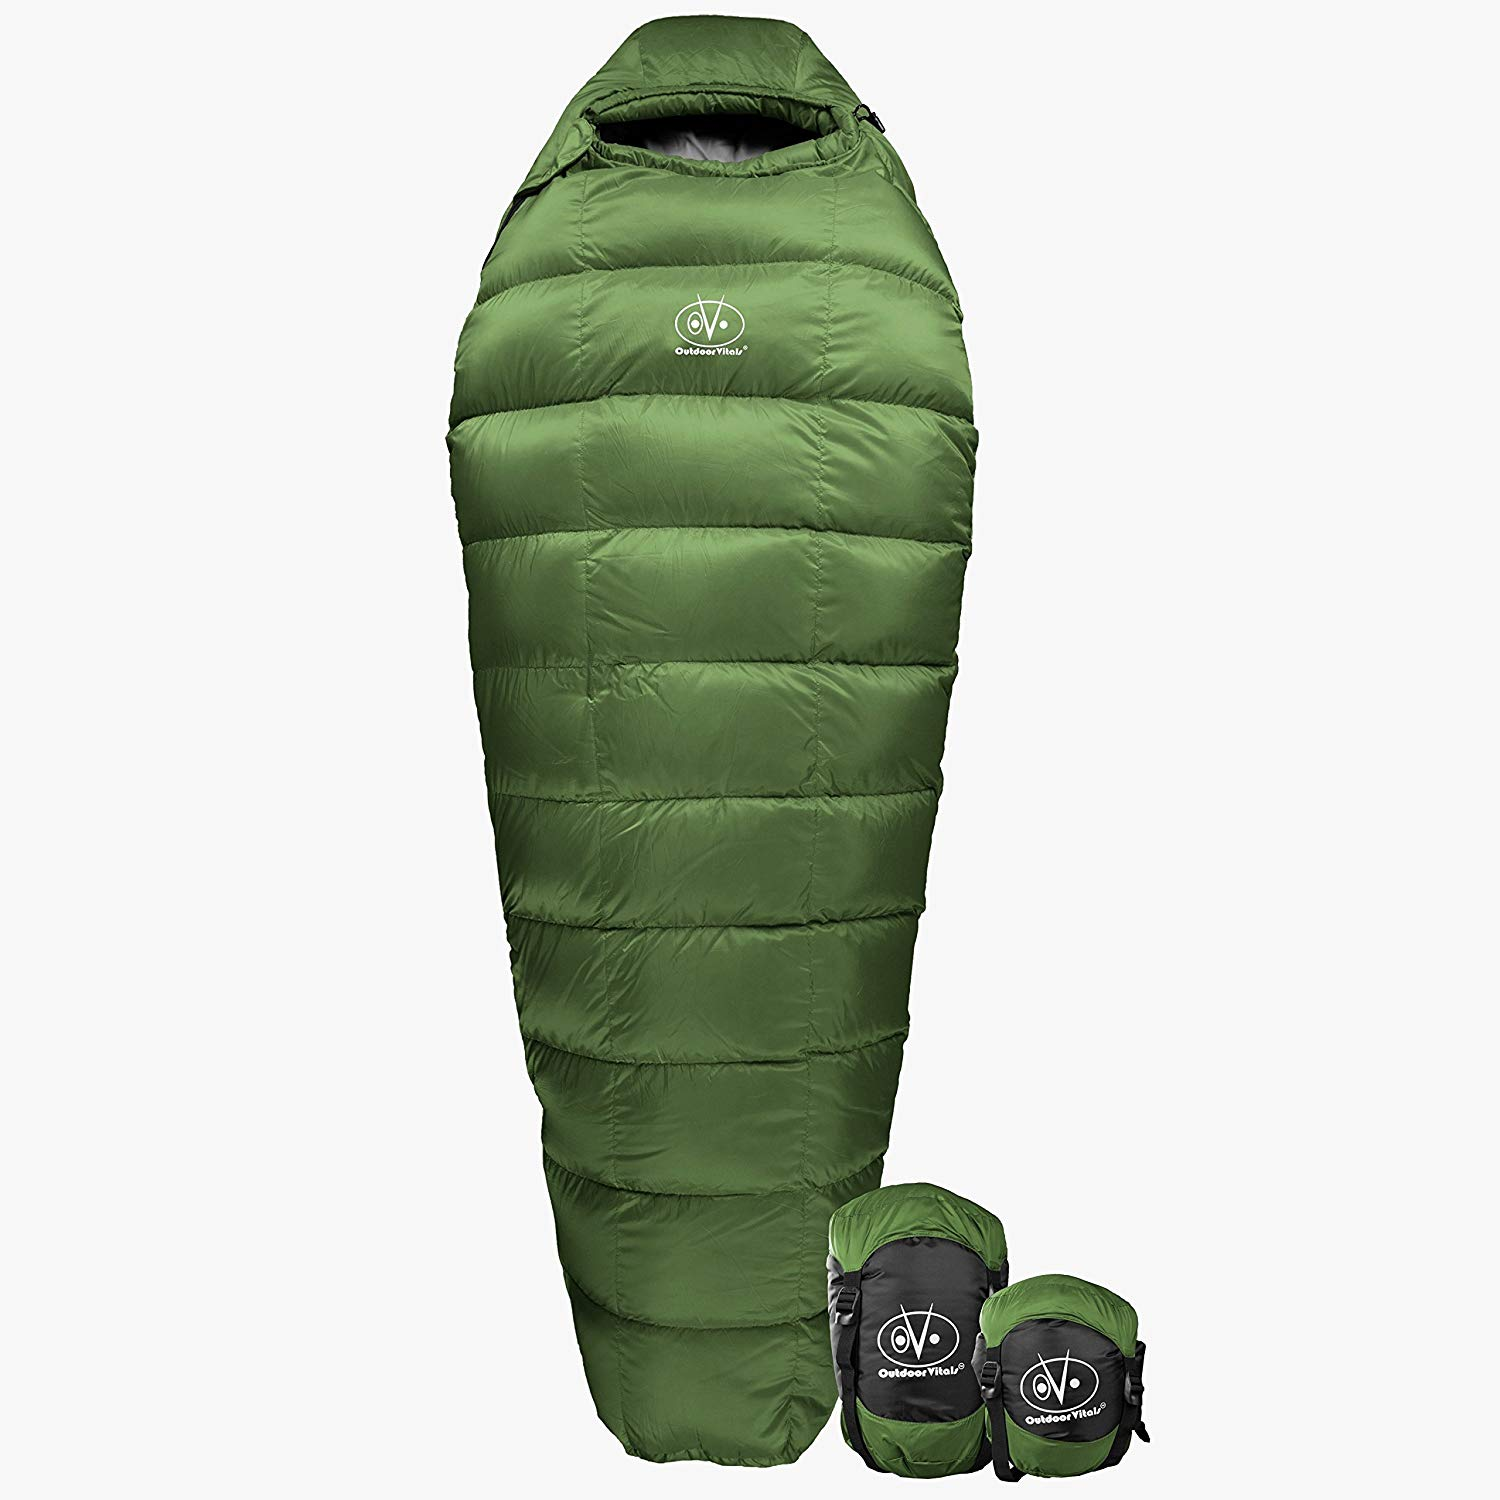 An image of Outdoor Vitals Summit 0 Degree Down Sleeping Bag